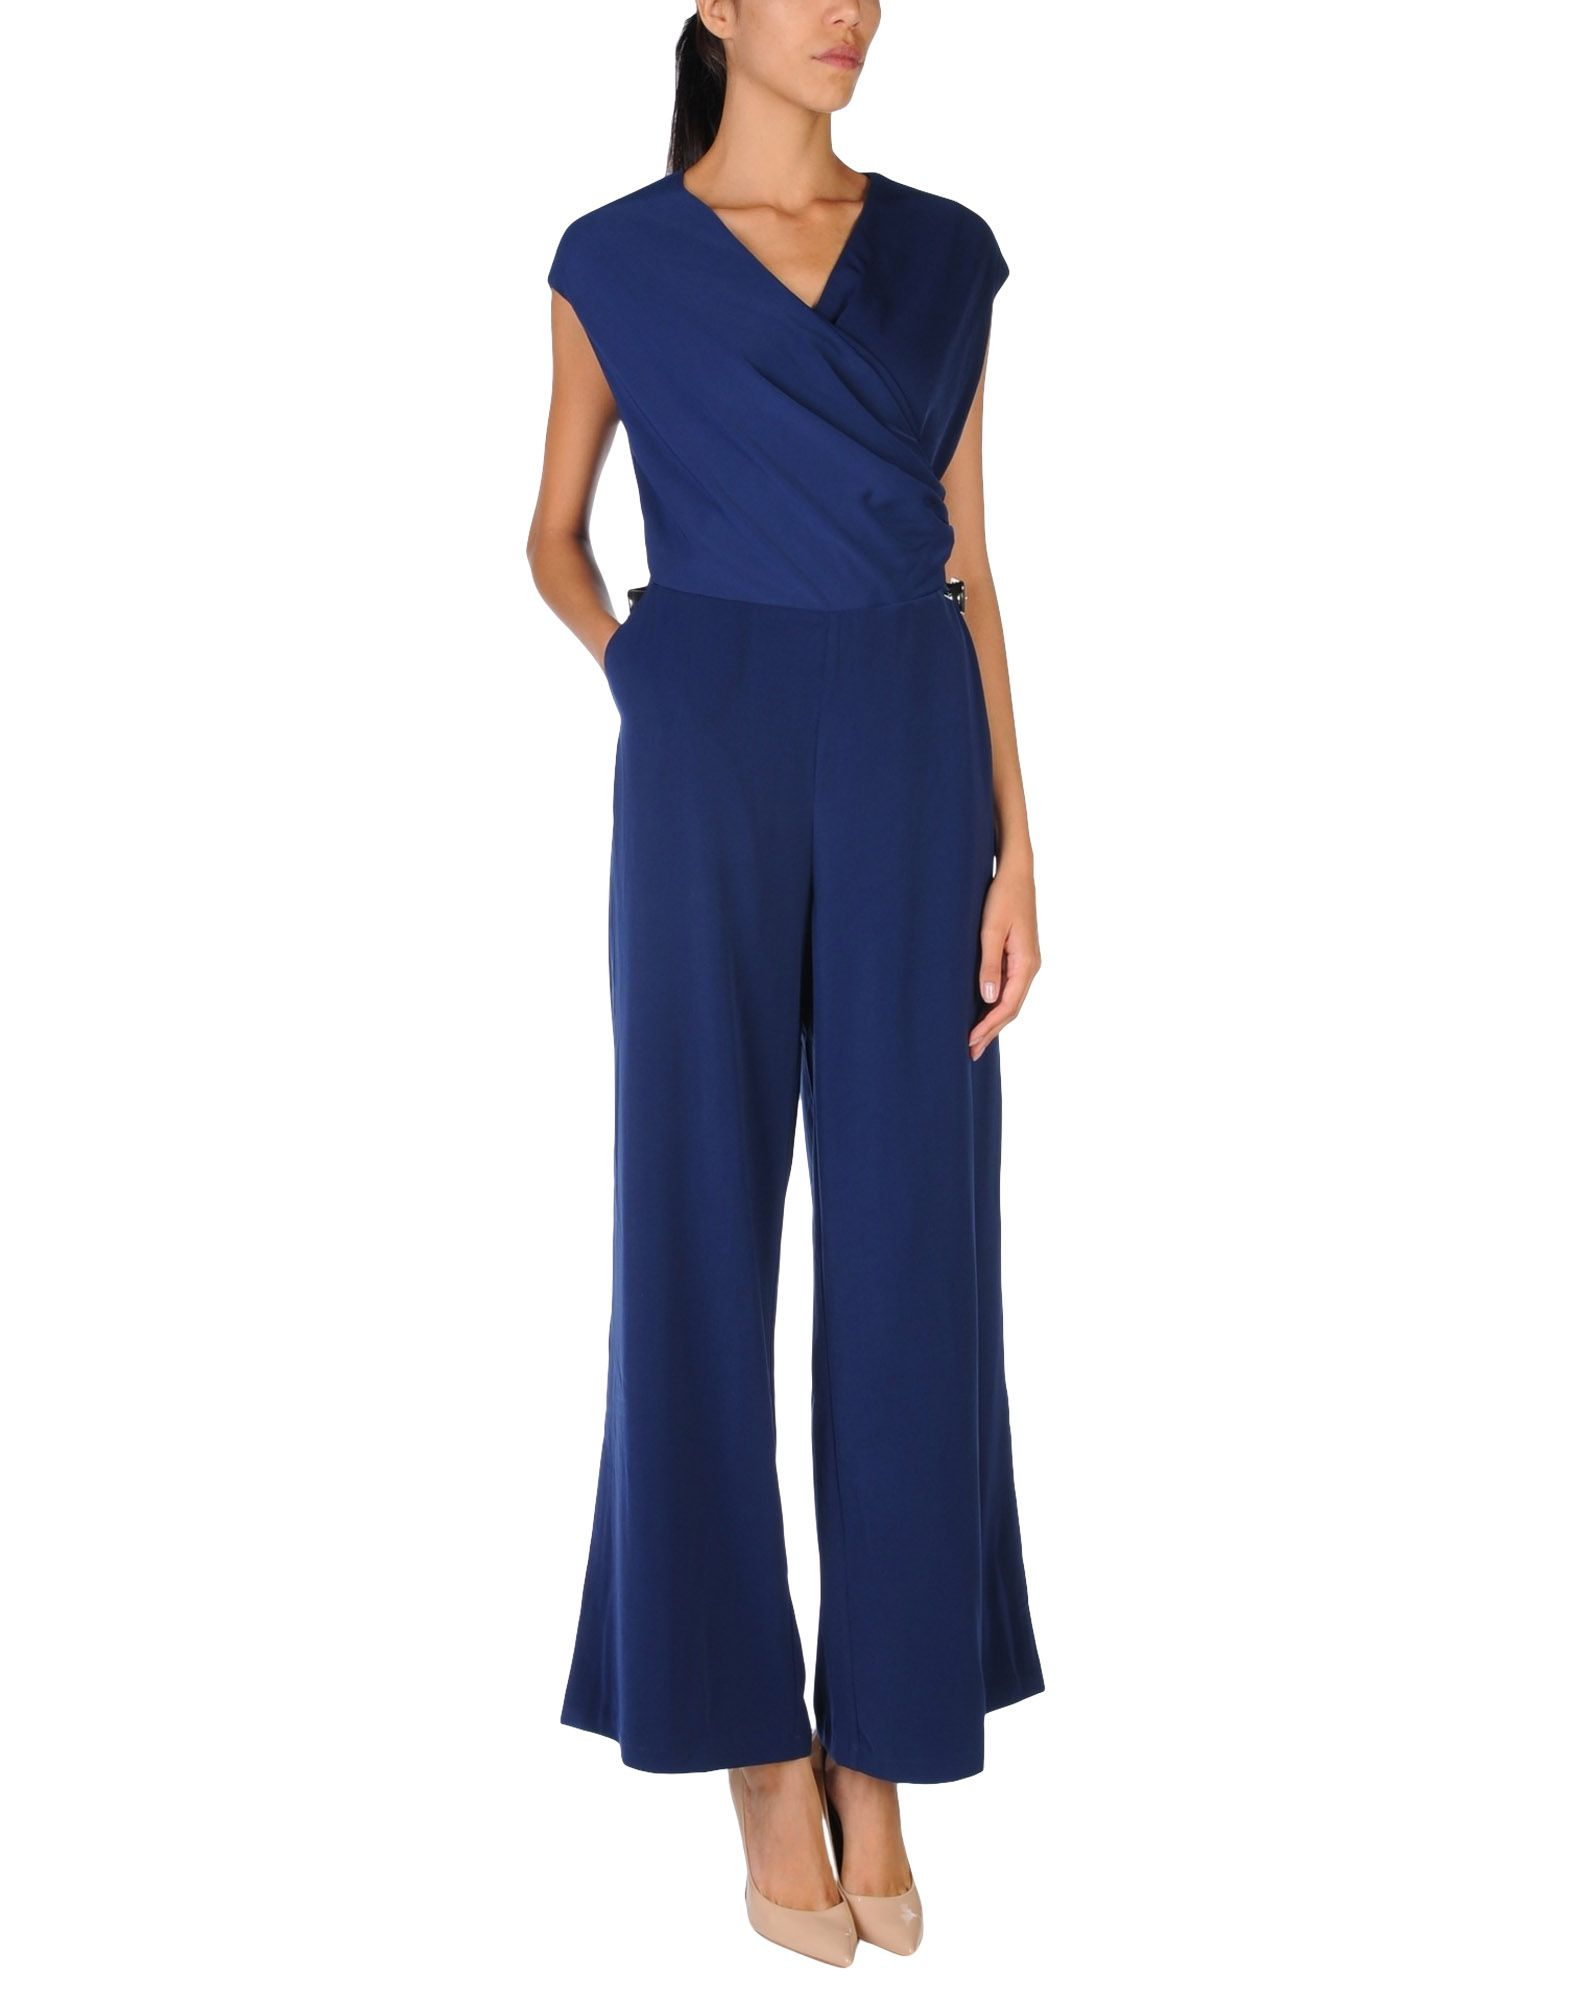 5e678325ac8 Guess Jumpsuit One Piece - Women Guess Jumpsuits One Pieces online ...